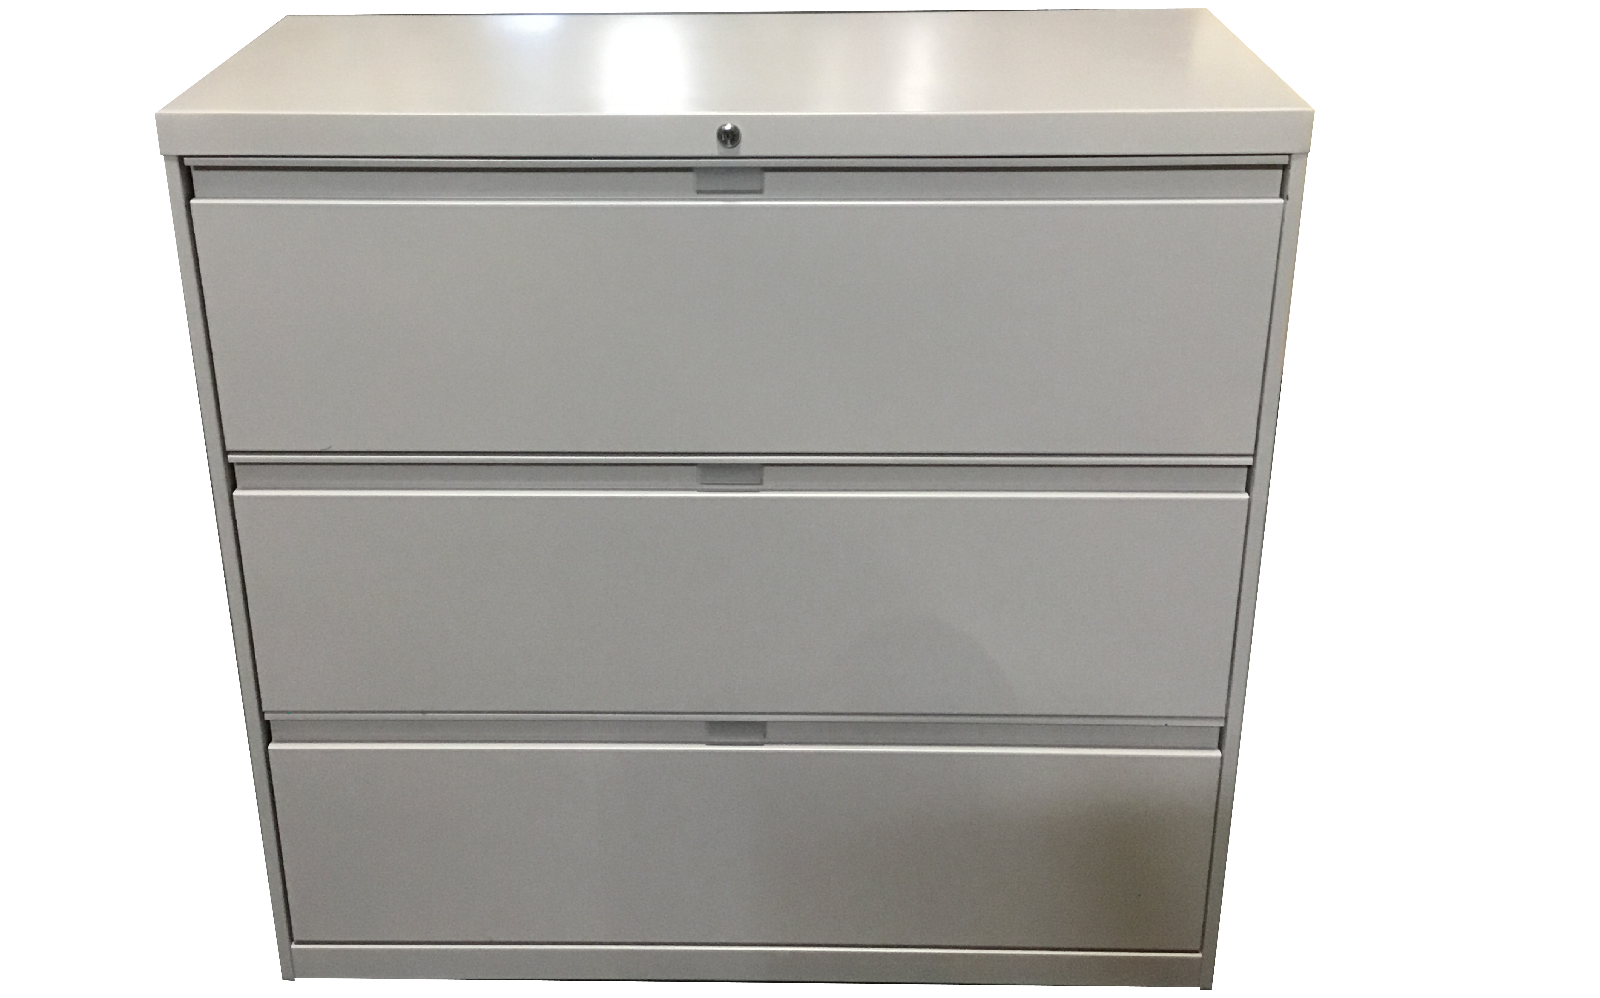 METAL LATERAL FILE CABINET